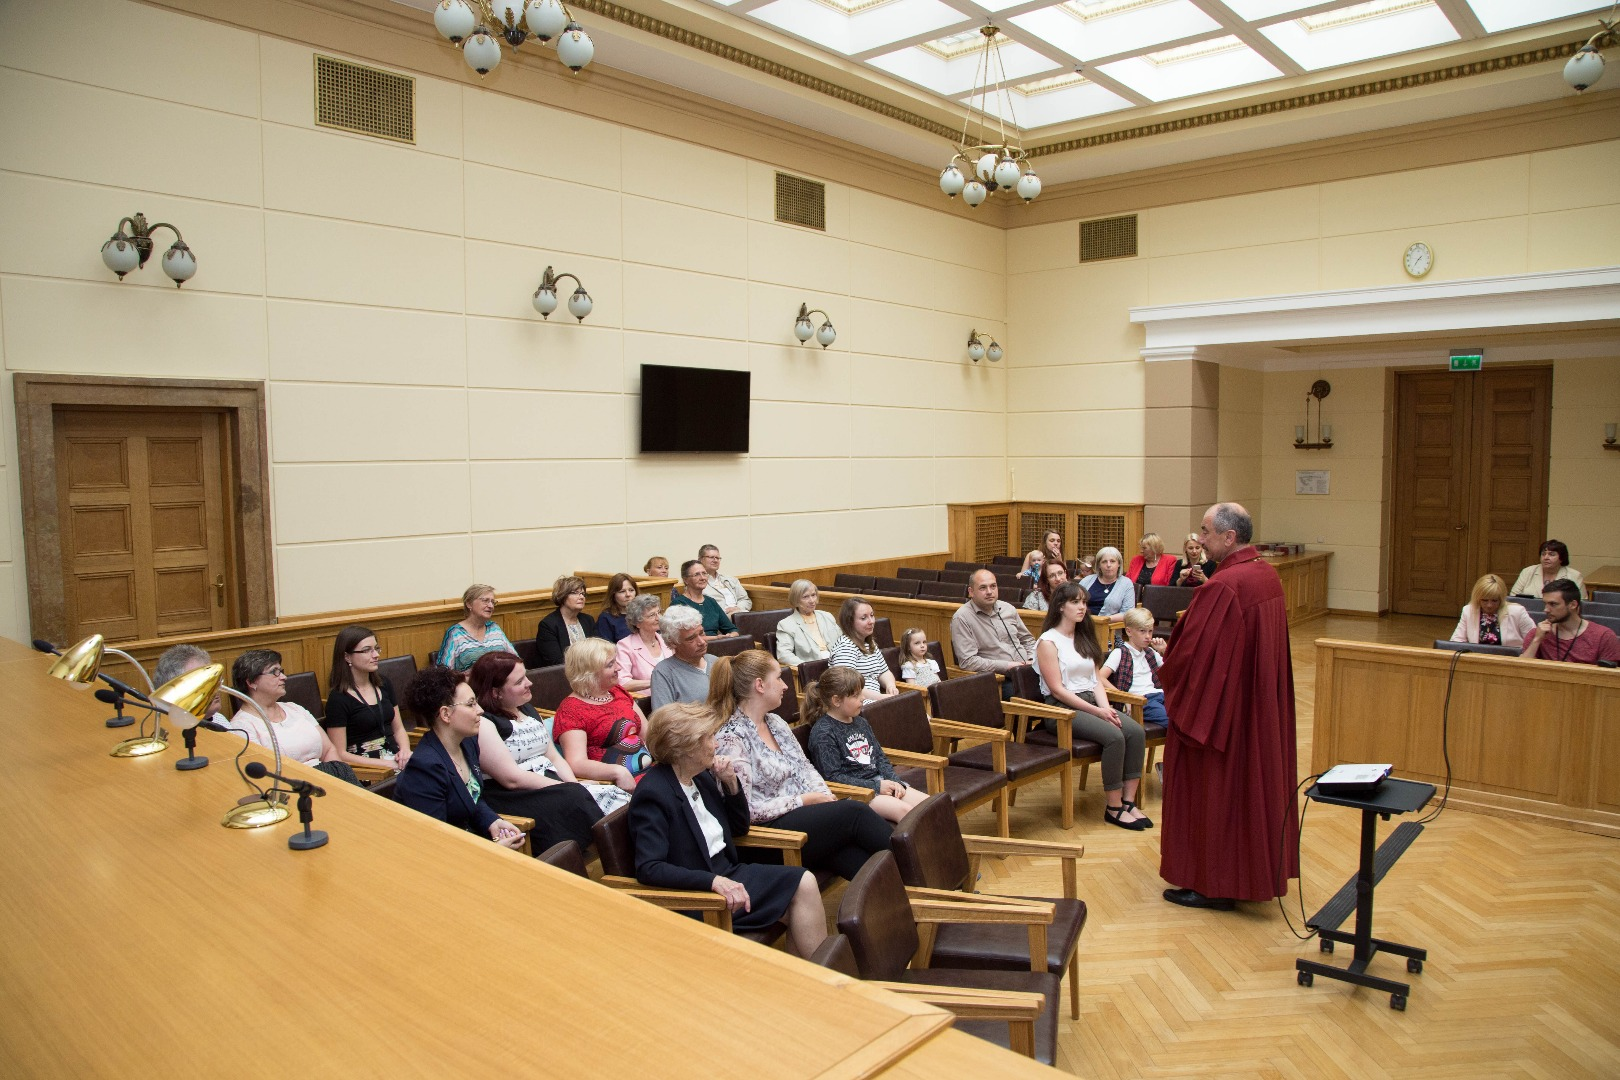 """18.05.2018. On the Day of Families the families of judges and employees – parents, grandparents, spouses, brothers, sisters and other relatives were invited to visit the Court. """"Your support and understanding help your dear ones in their daily work. Therefore, we wish to show where we work and what we do"""", Ivars Bickovics, the Chief Justice of the Supreme Court, said at the opening of the event. Visitors watched the film """"Senators"""", walked around the Palace of Justice, visited the Supreme Court Museum, as well as their relatives' workplaces."""